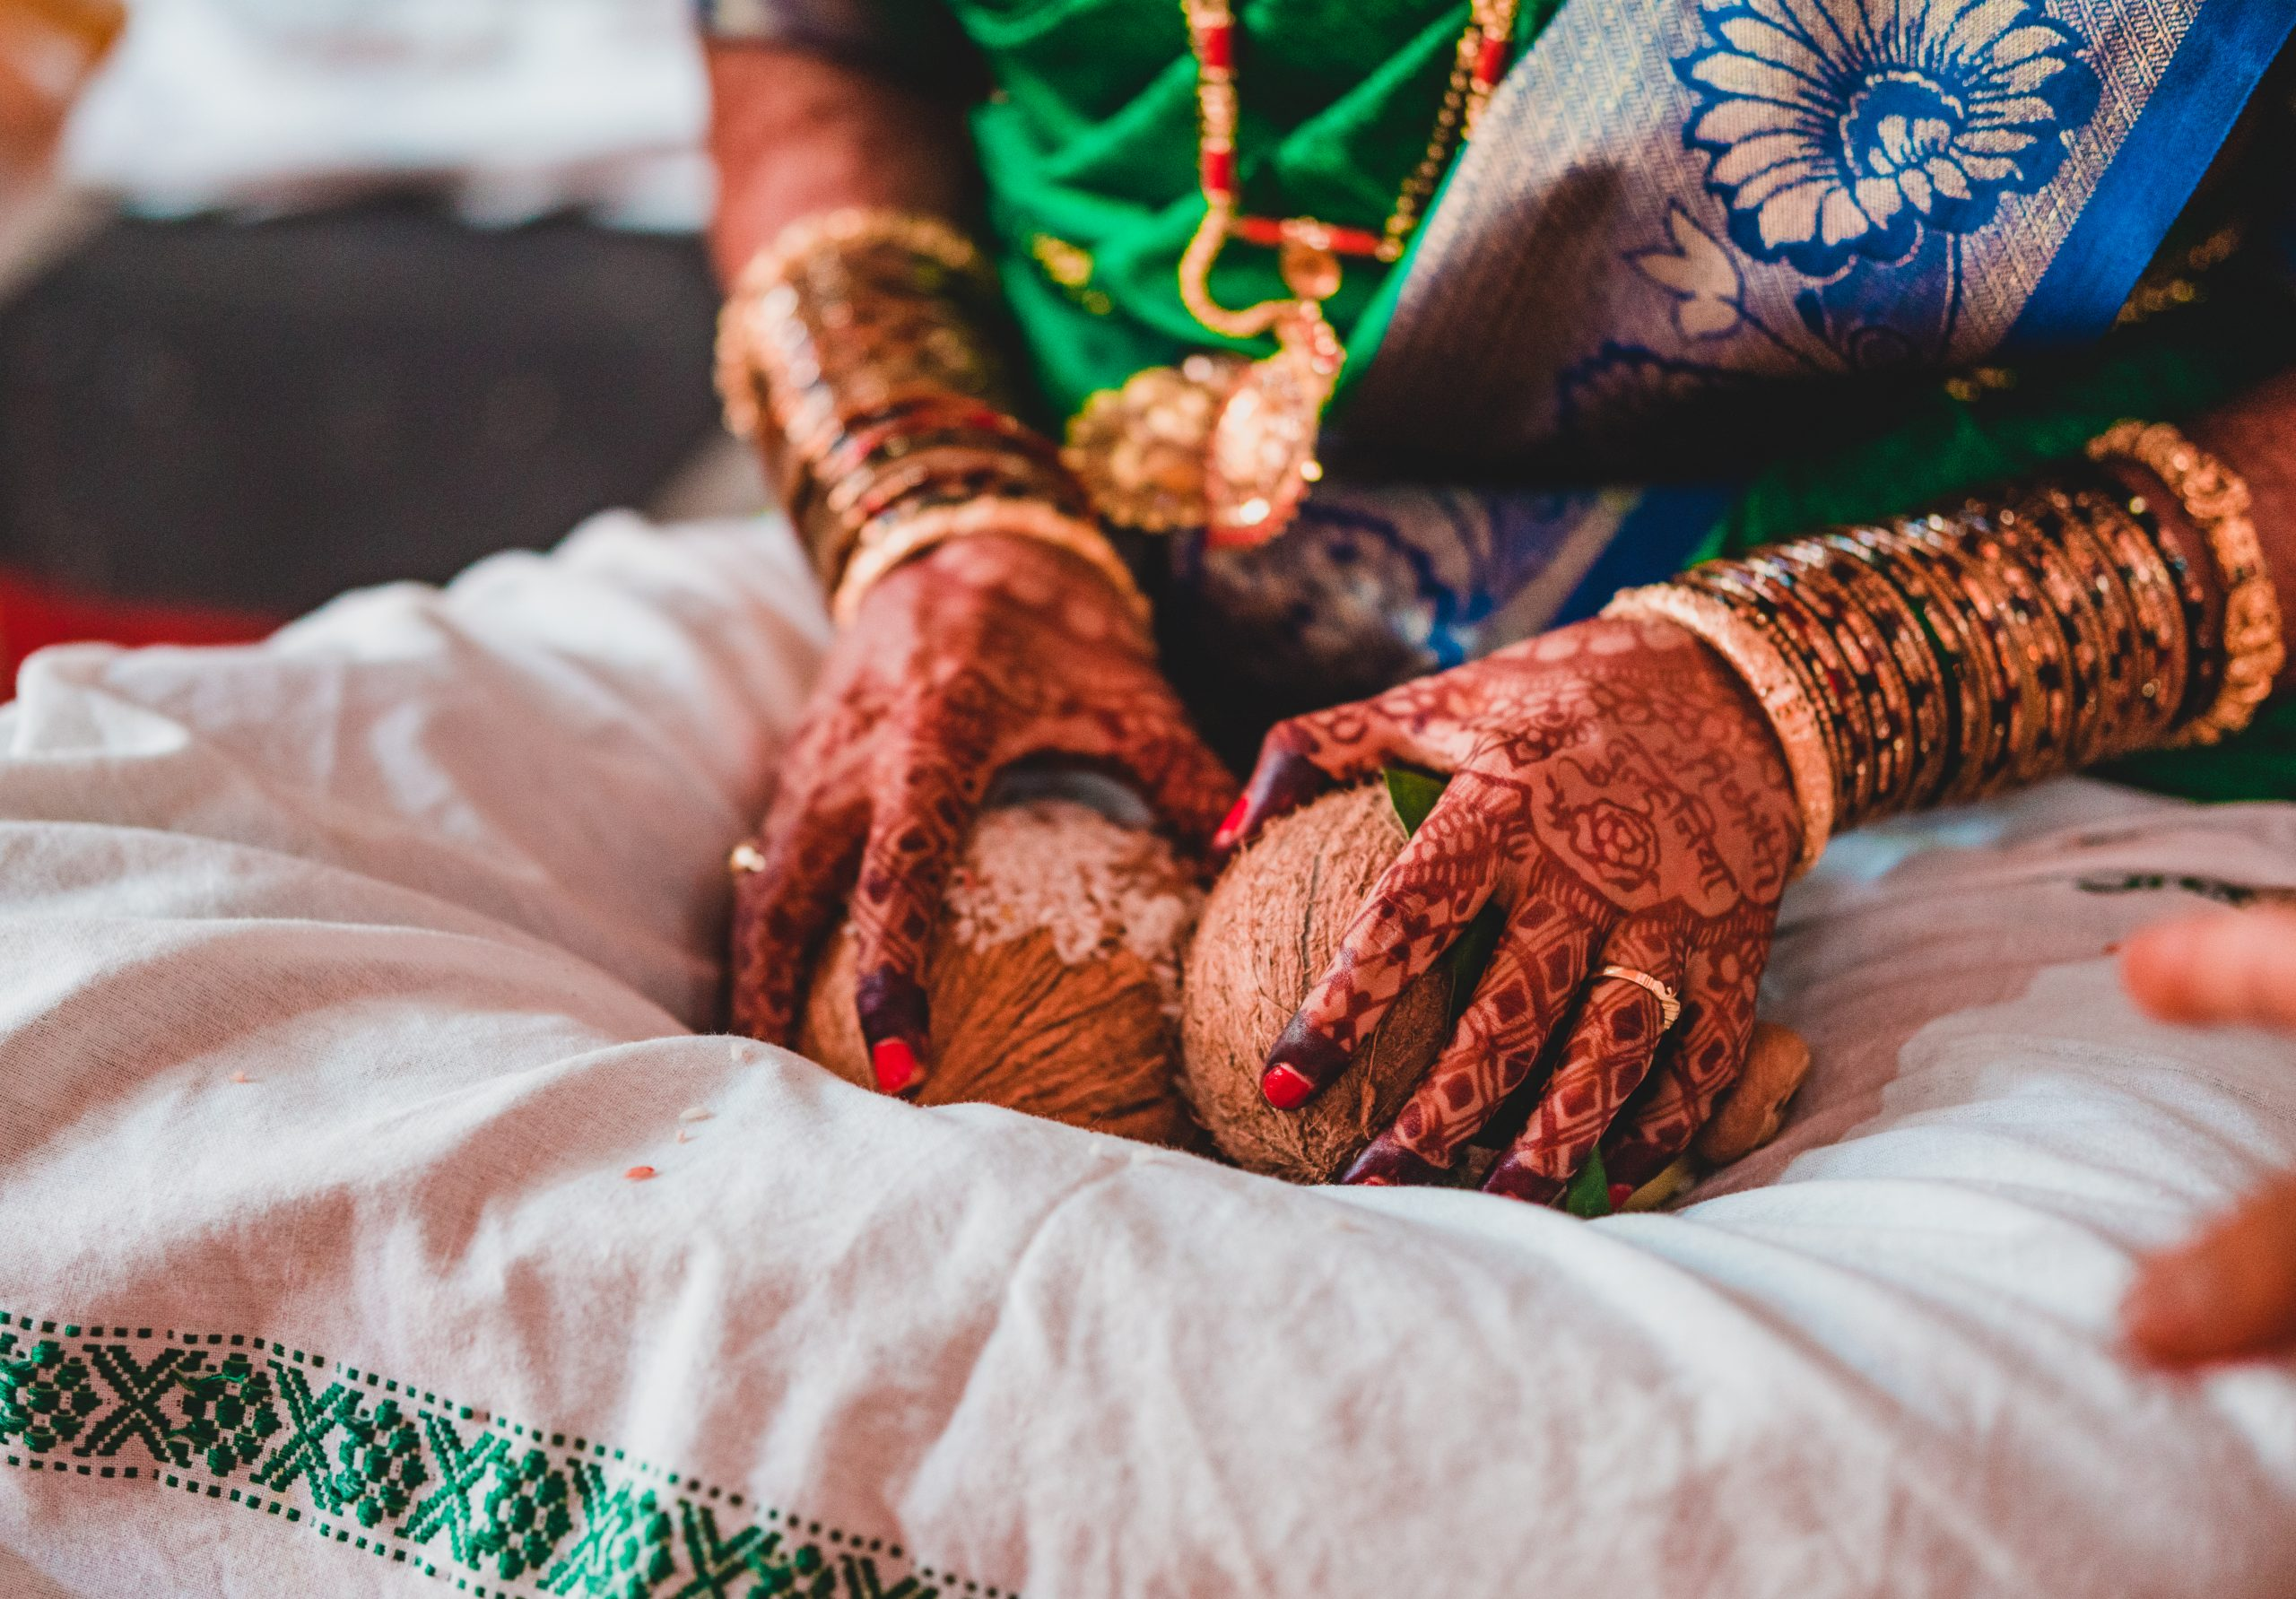 An Indian bride hands